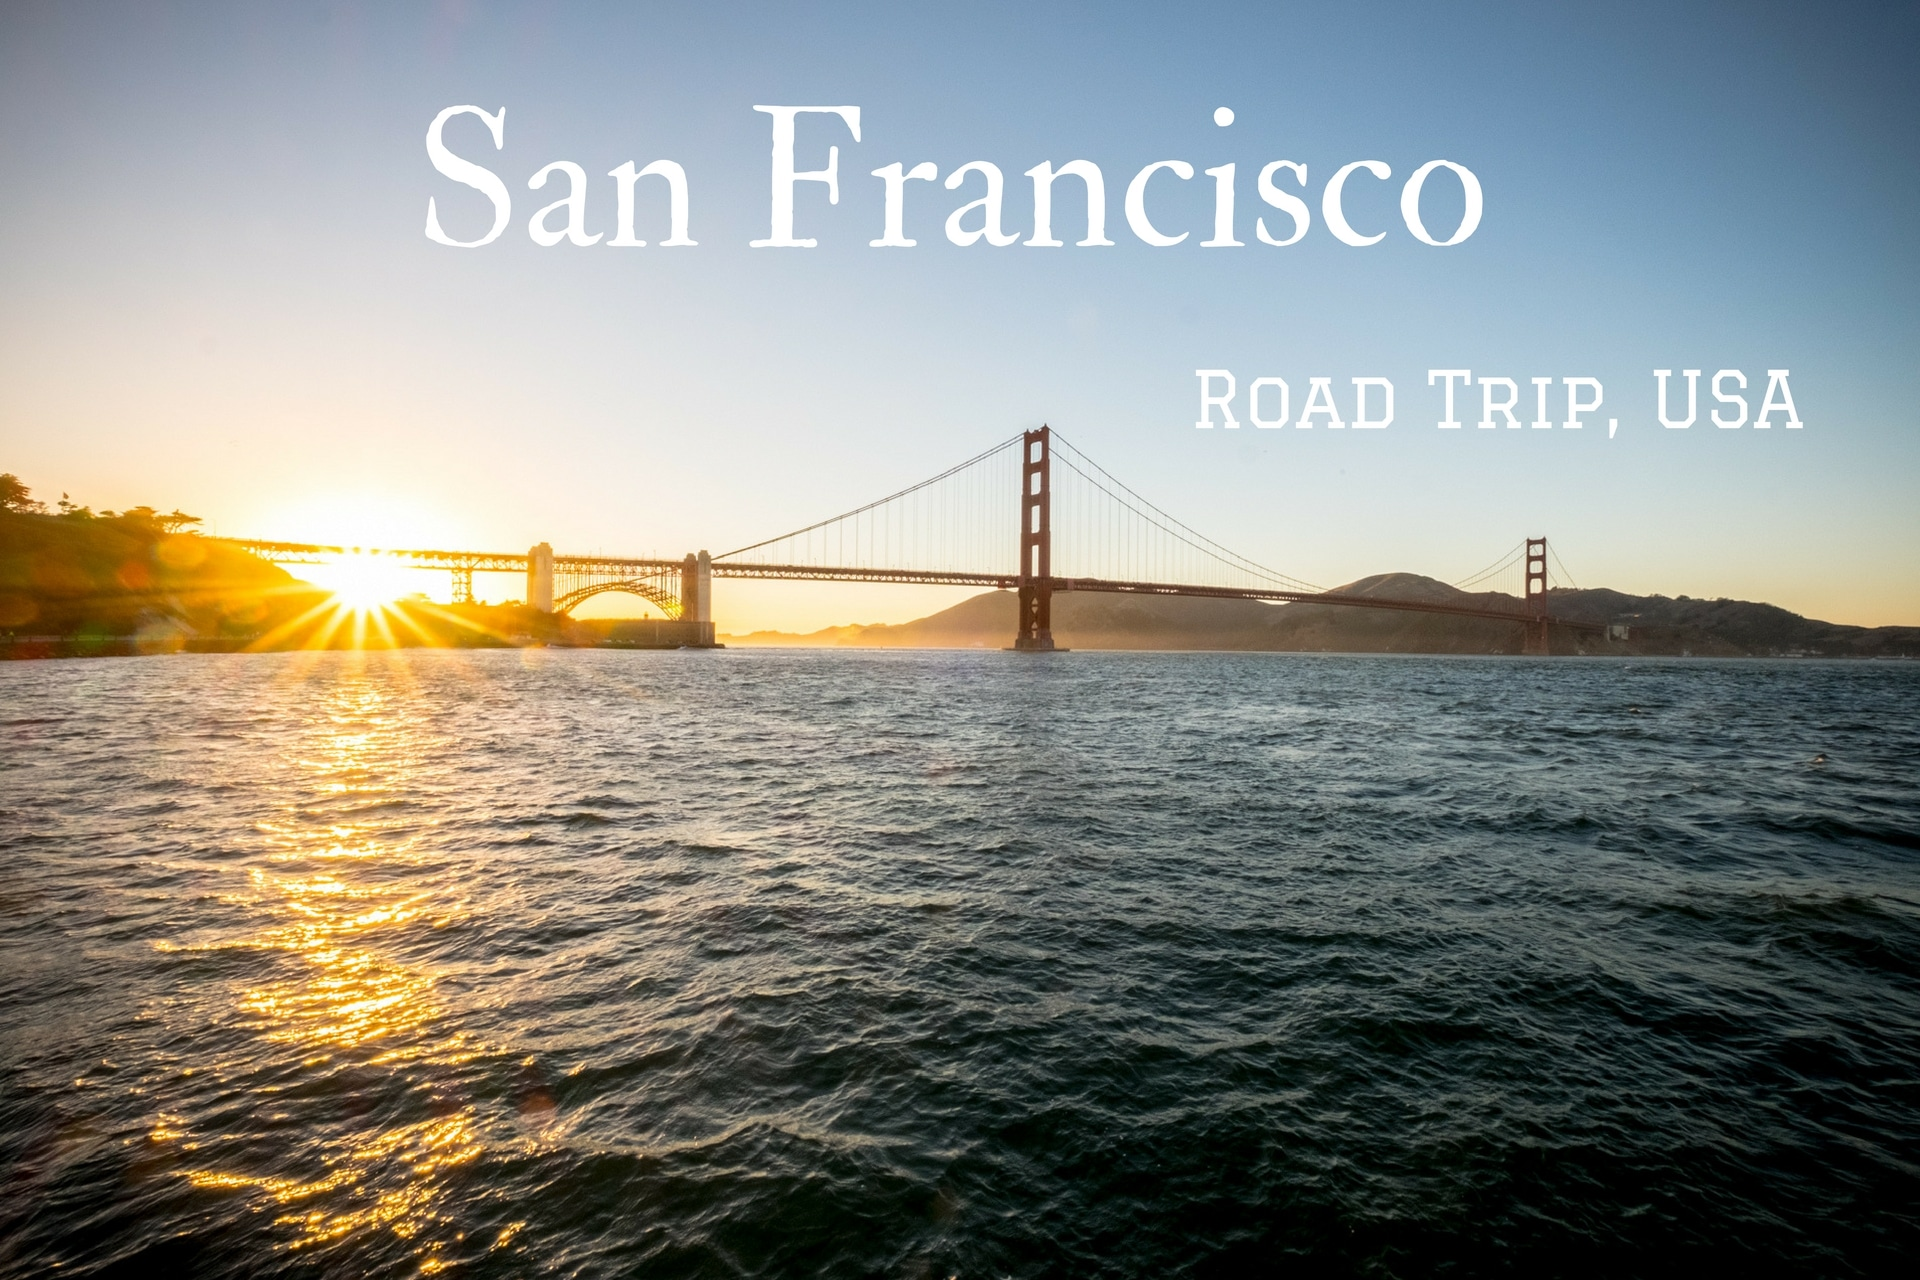 Roadtrip 3 jours à San Francisco